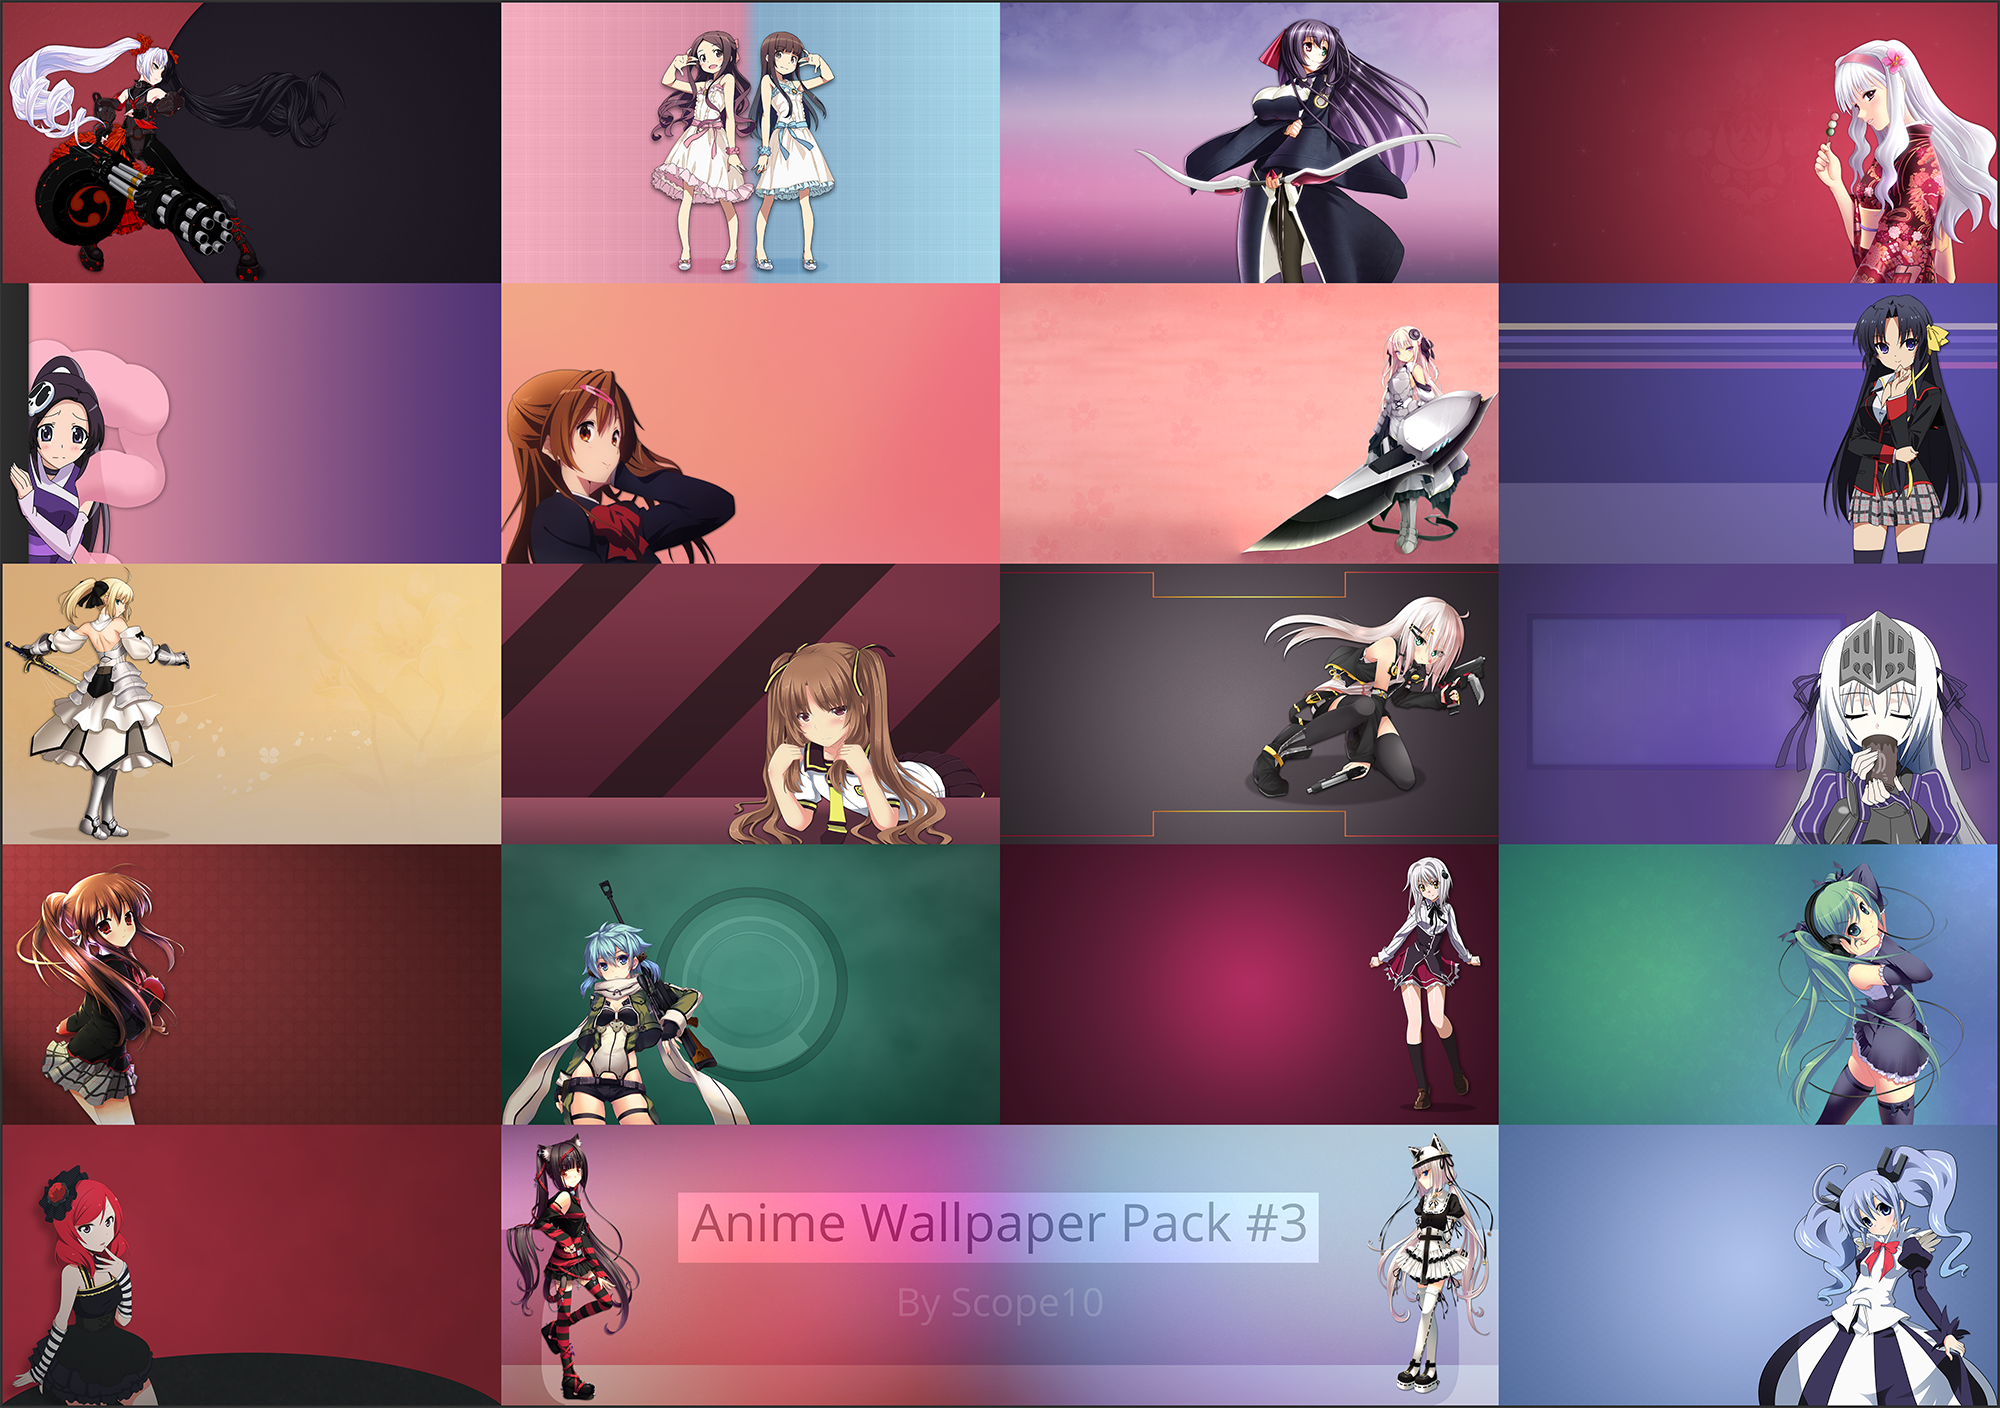 Anime Wallpaper Pack 3 By Scope10 On Deviantart